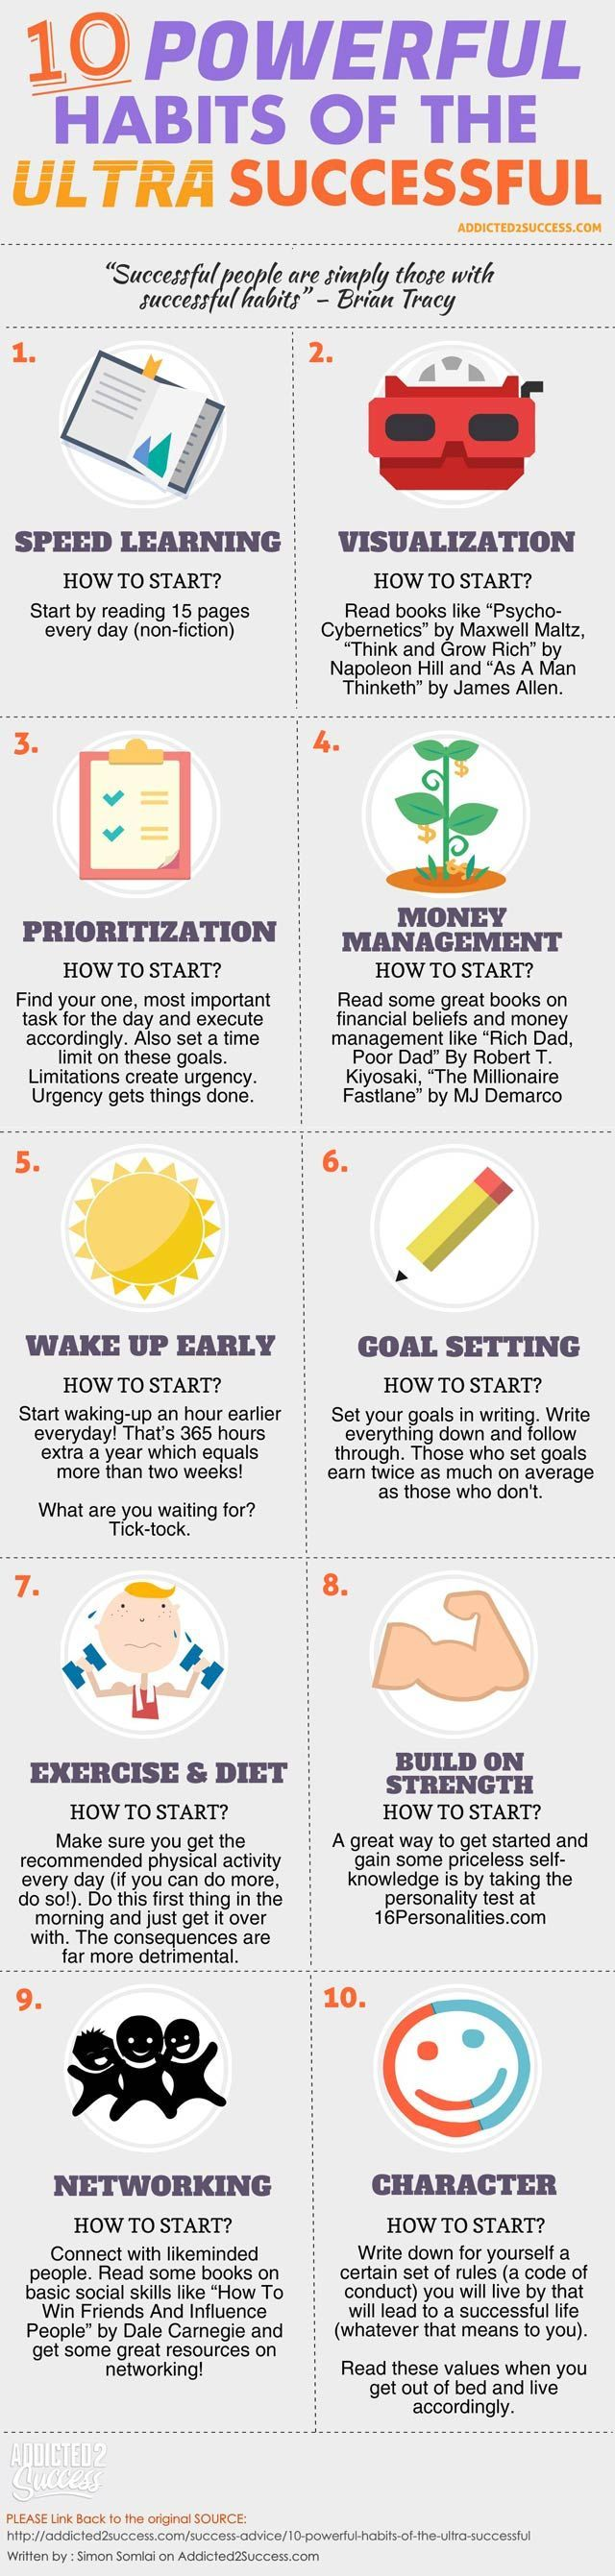 The most common habits performed by successful entrepreneurs to help you get organized and focus your efforts.